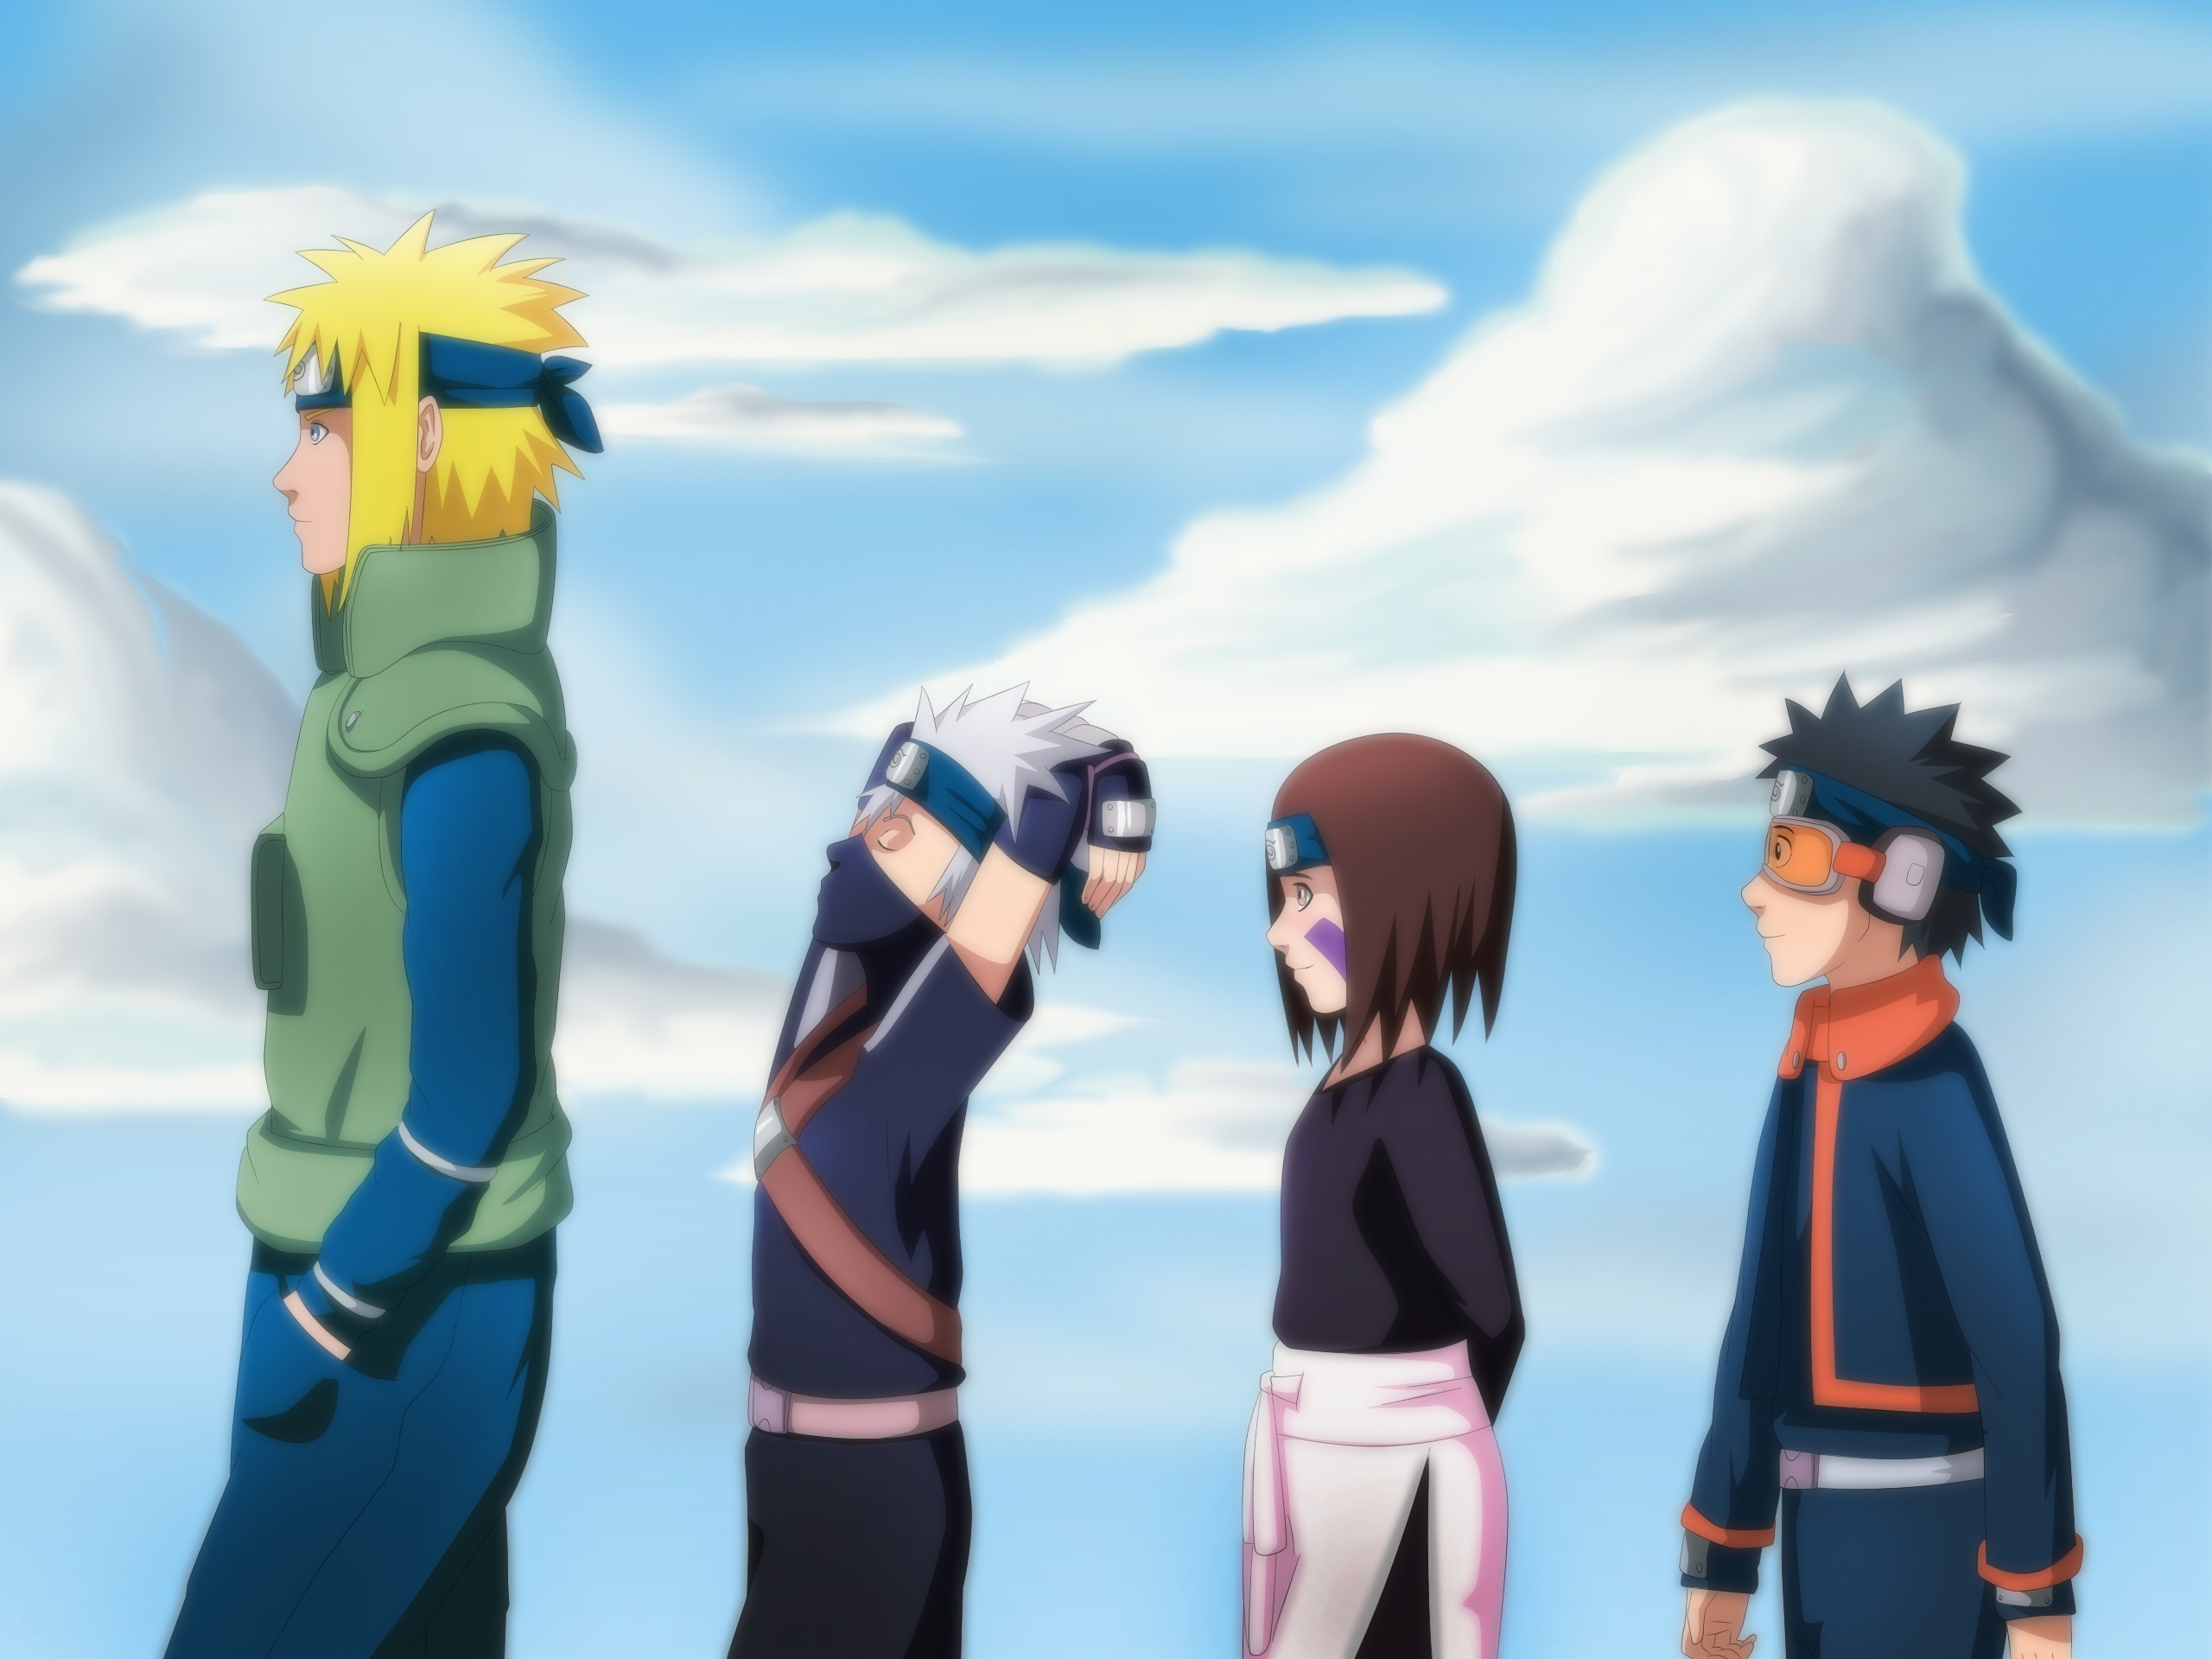 Naruto Wallpaper Iphone 4 Fourth Hokage Team Full Hd Papel De Parede And Planos De